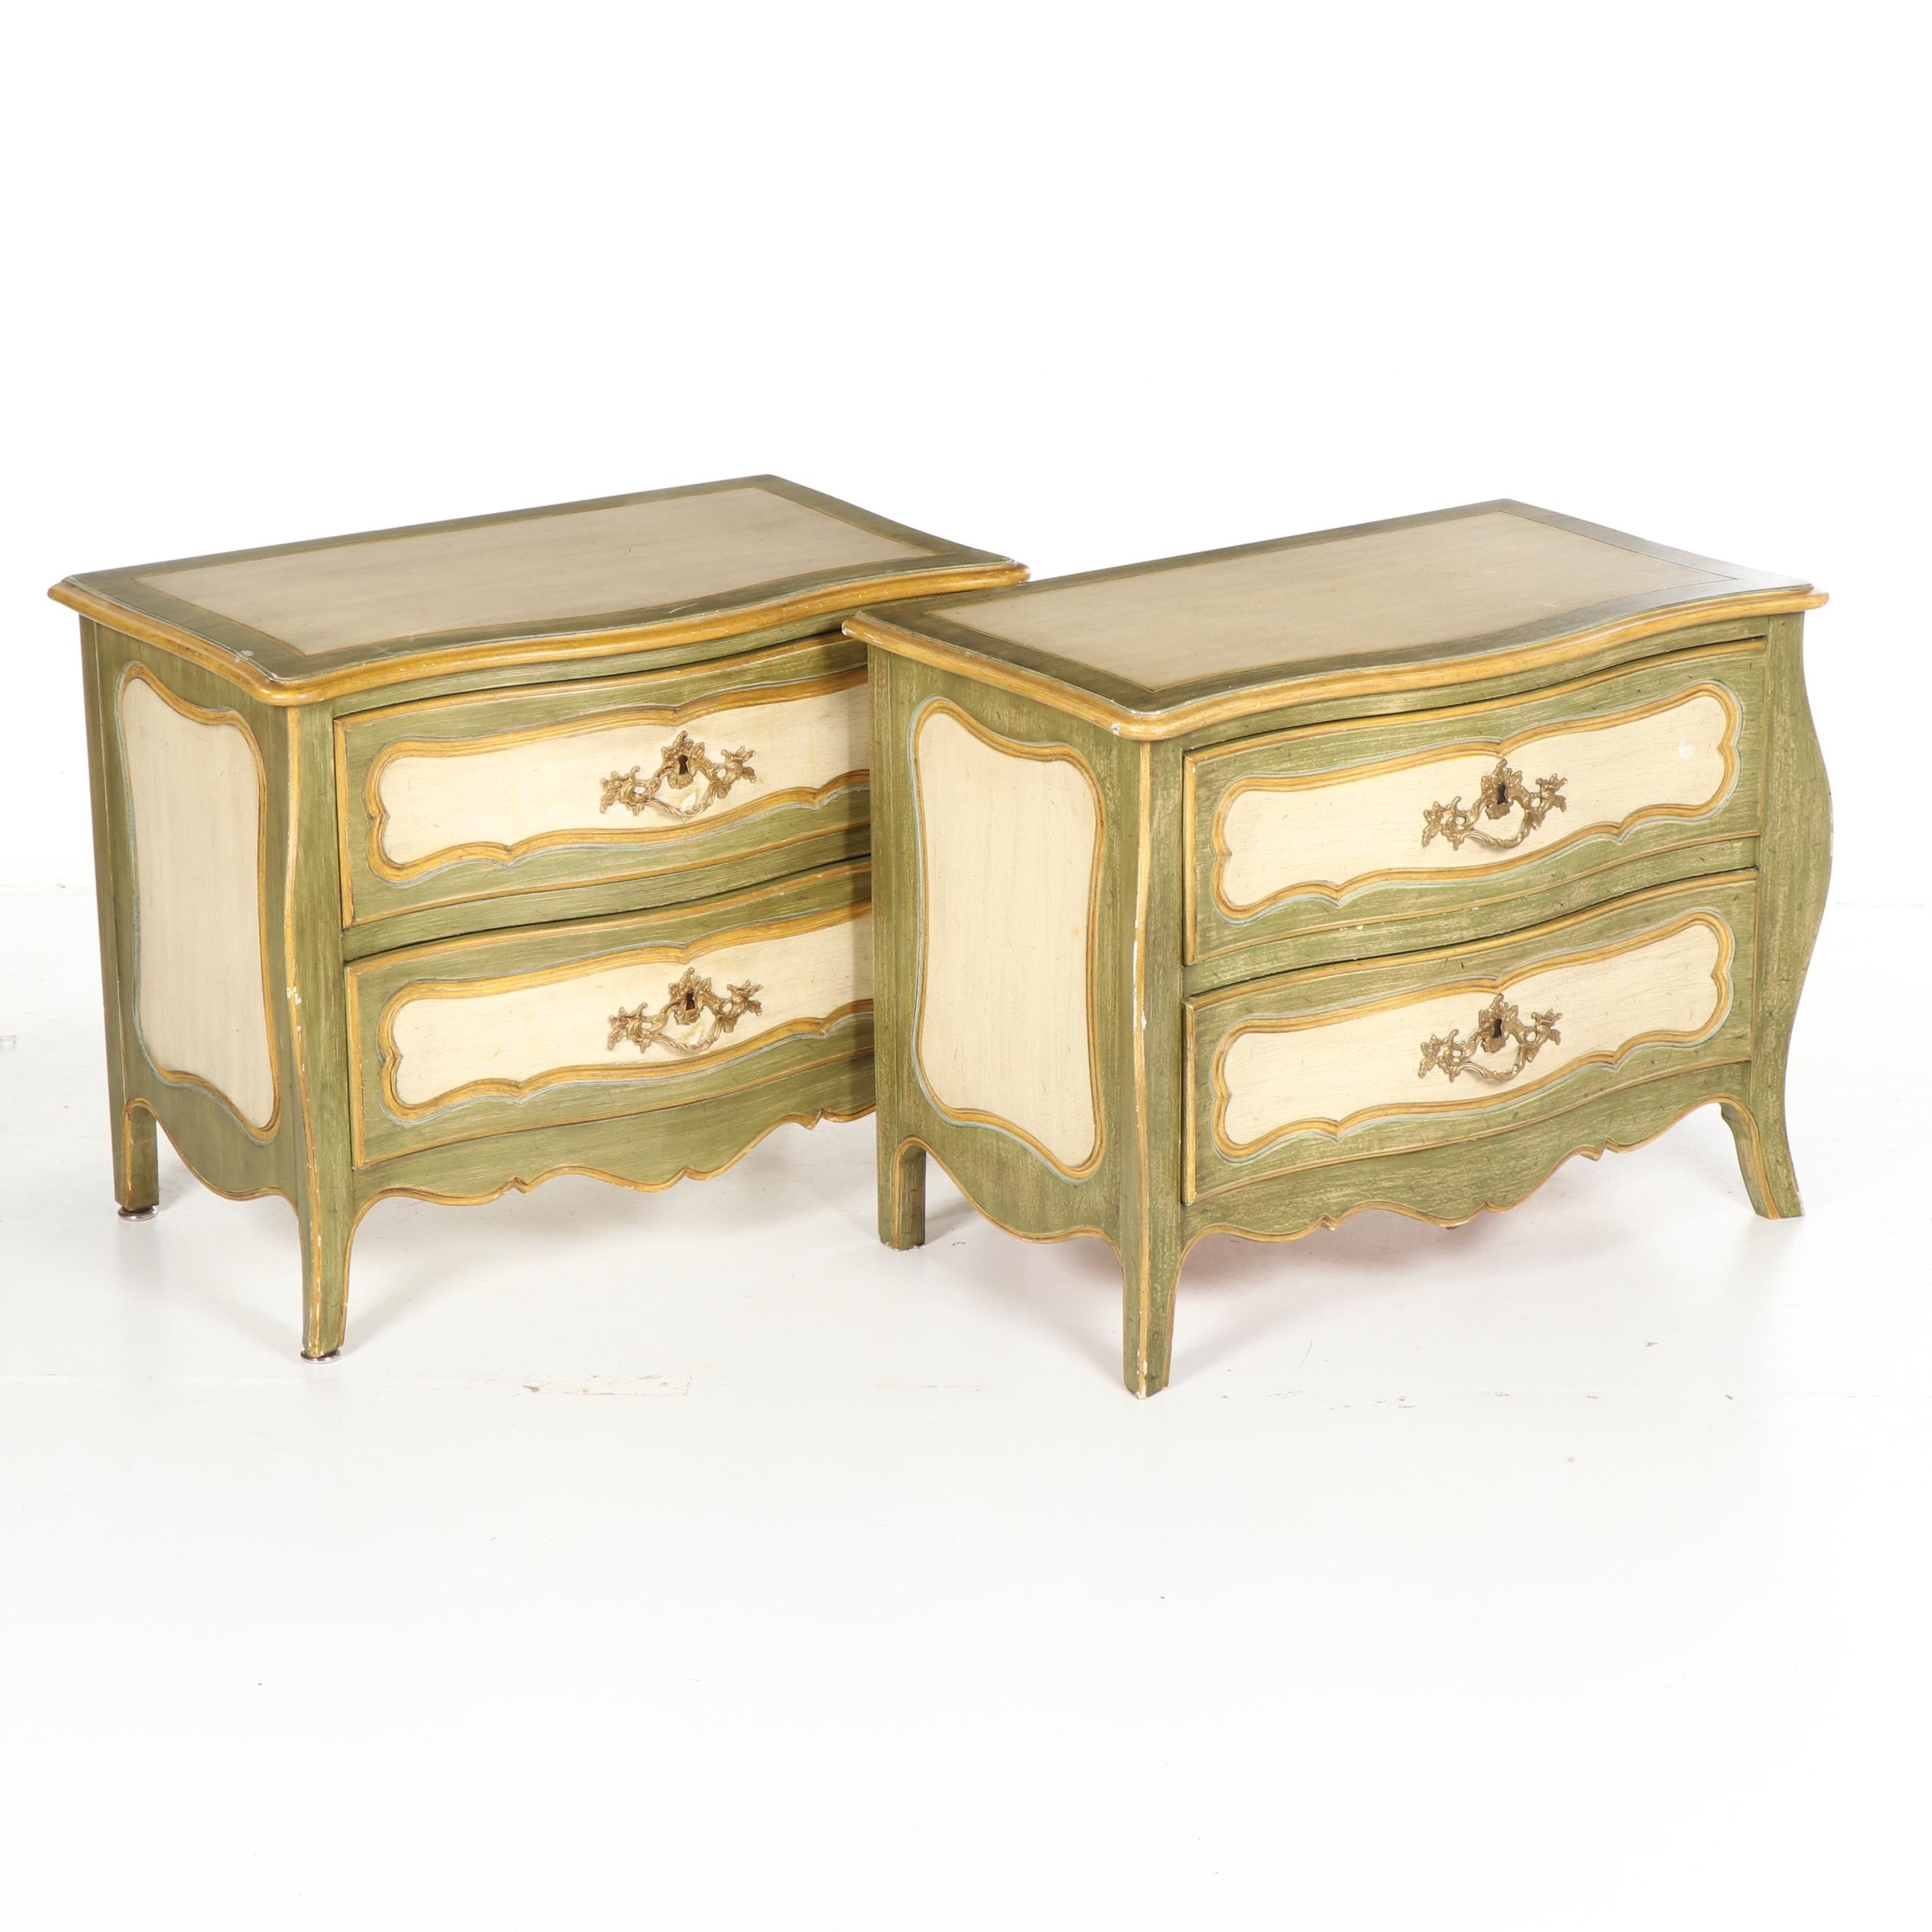 French Provincial Style Painted Wood Two-Drawer Nightstands, Late 20th Century